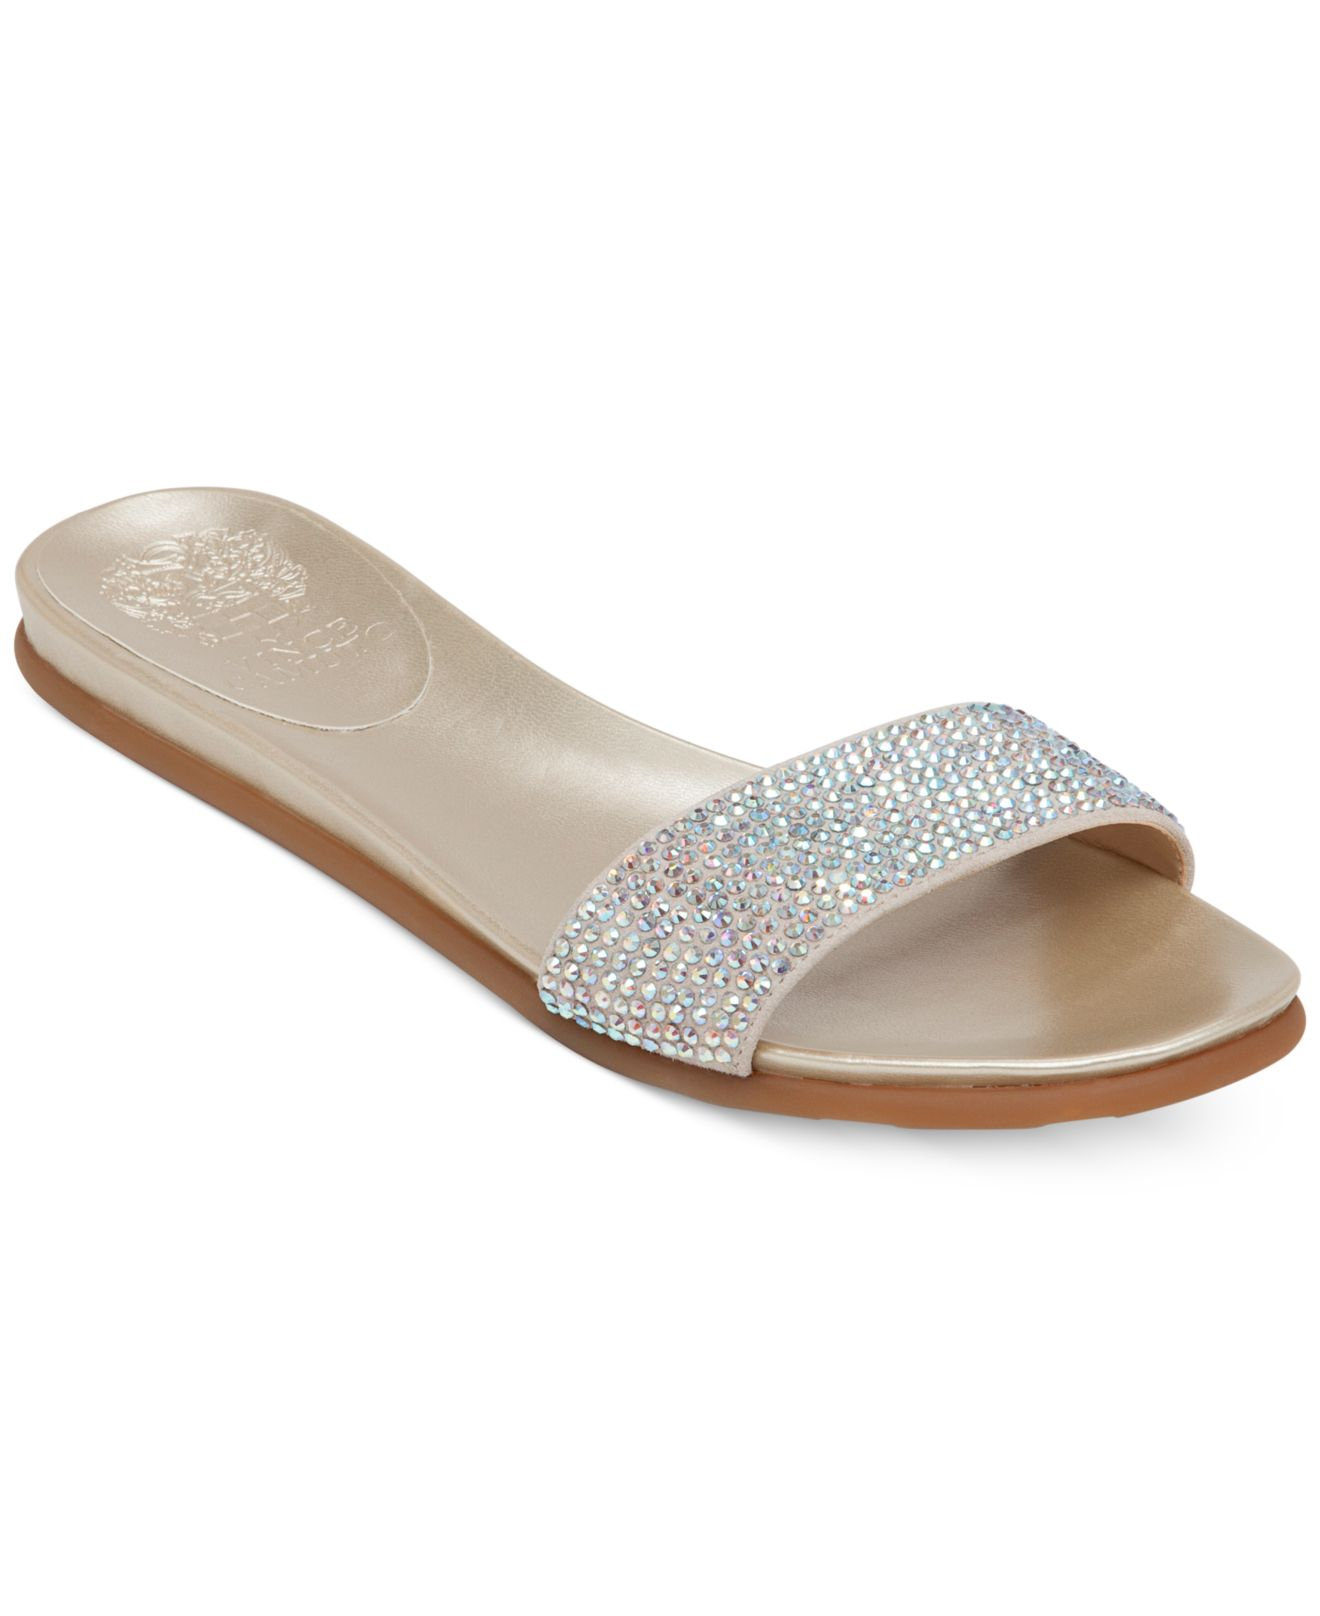 Vince Camuto Endilla Flat Slide Sandals In Metallic Lyst